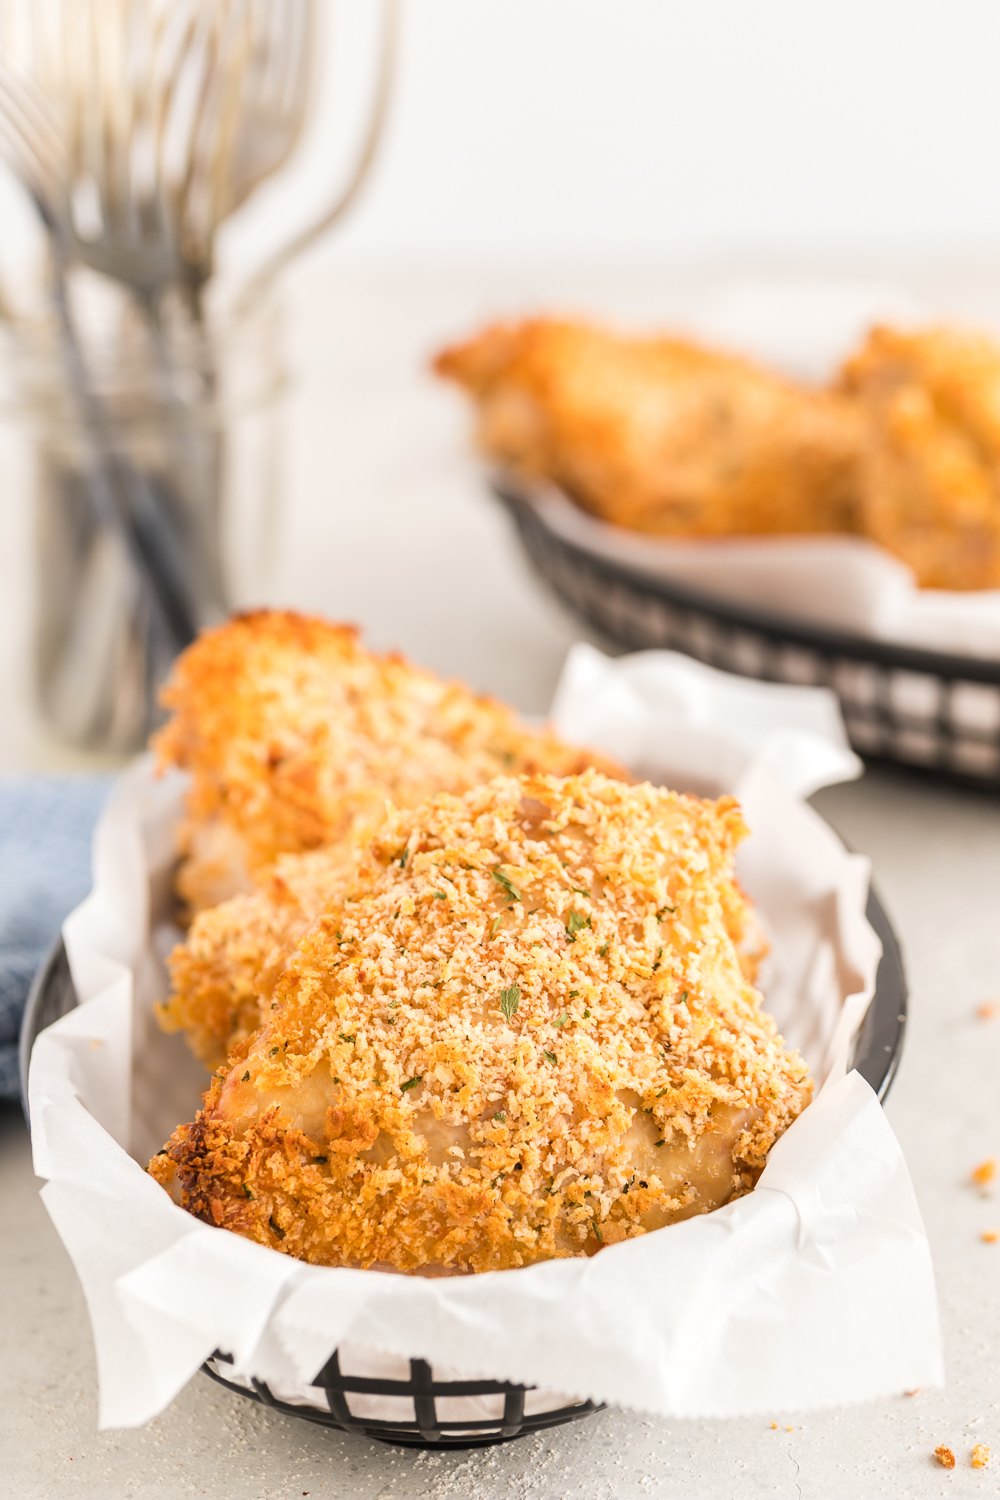 Panko Oven Fried Chicken: a delicious fried chicken recipe that is baked. It's crispy on the outside and juicy on the inside - just the way fried chicken should be!